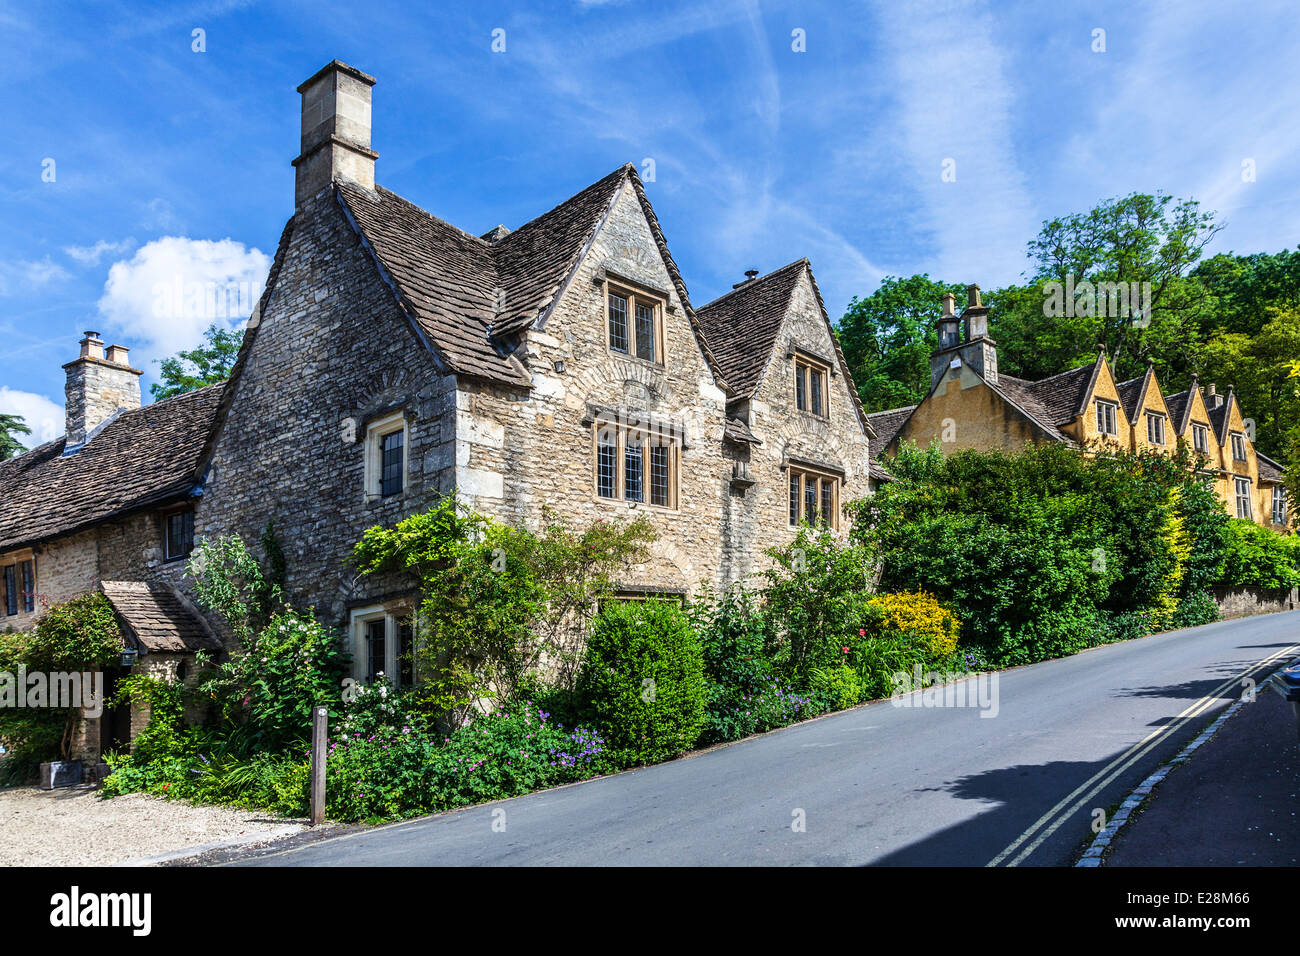 Roadside stone cottages in the Cotswold village of Castle Combe in Wiltshire. - Stock Image